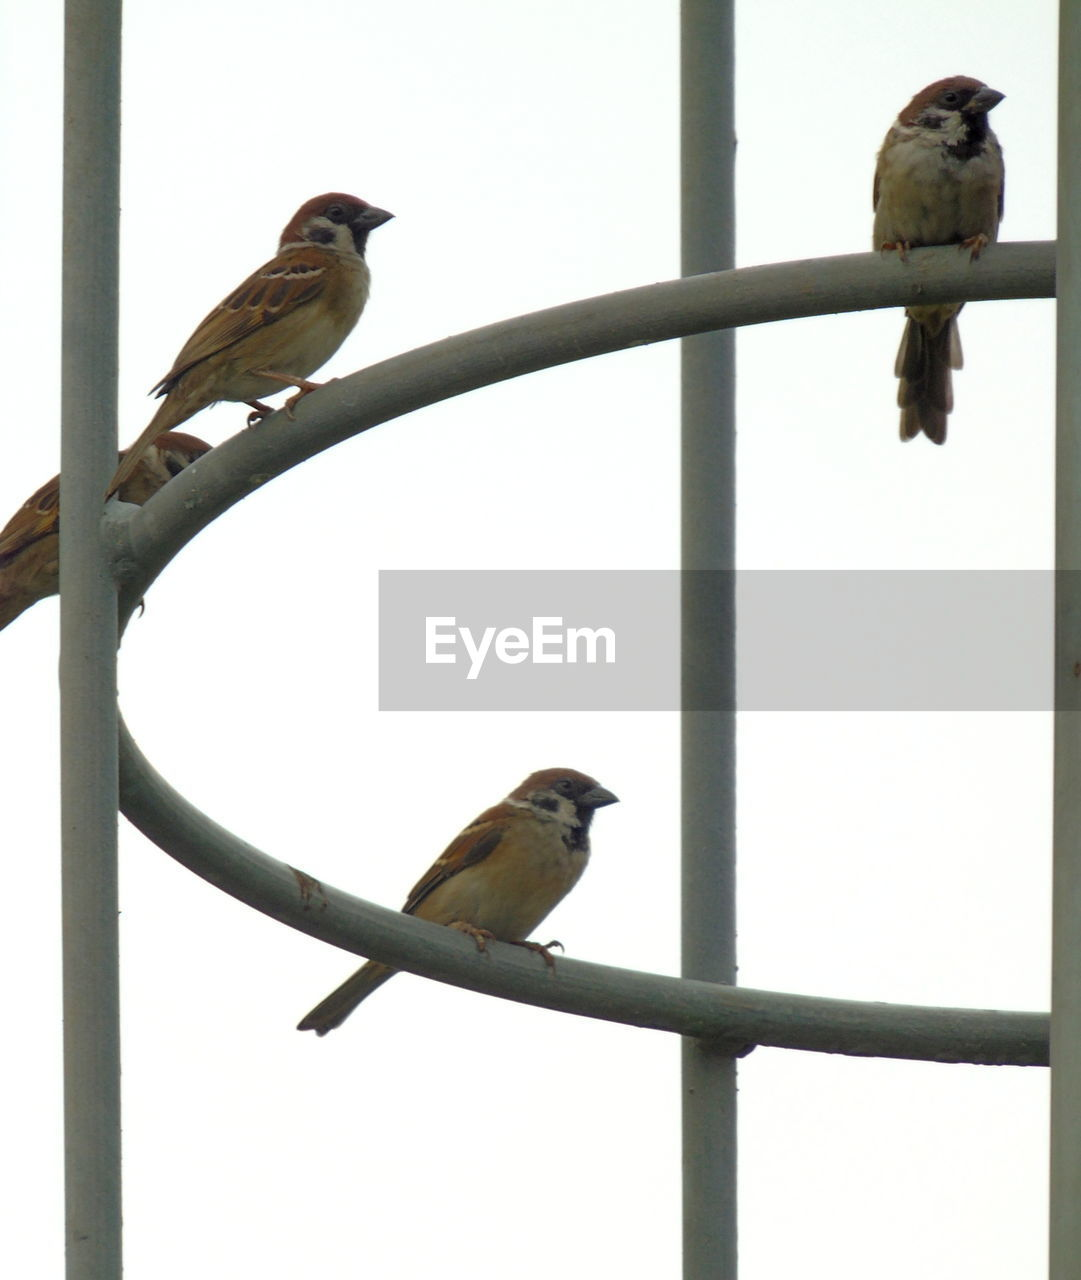 vertebrate, animal themes, bird, animal, animal wildlife, perching, animals in the wild, group of animals, two animals, no people, day, outdoors, nature, low angle view, sparrow, sky, songbird, clear sky, zoology